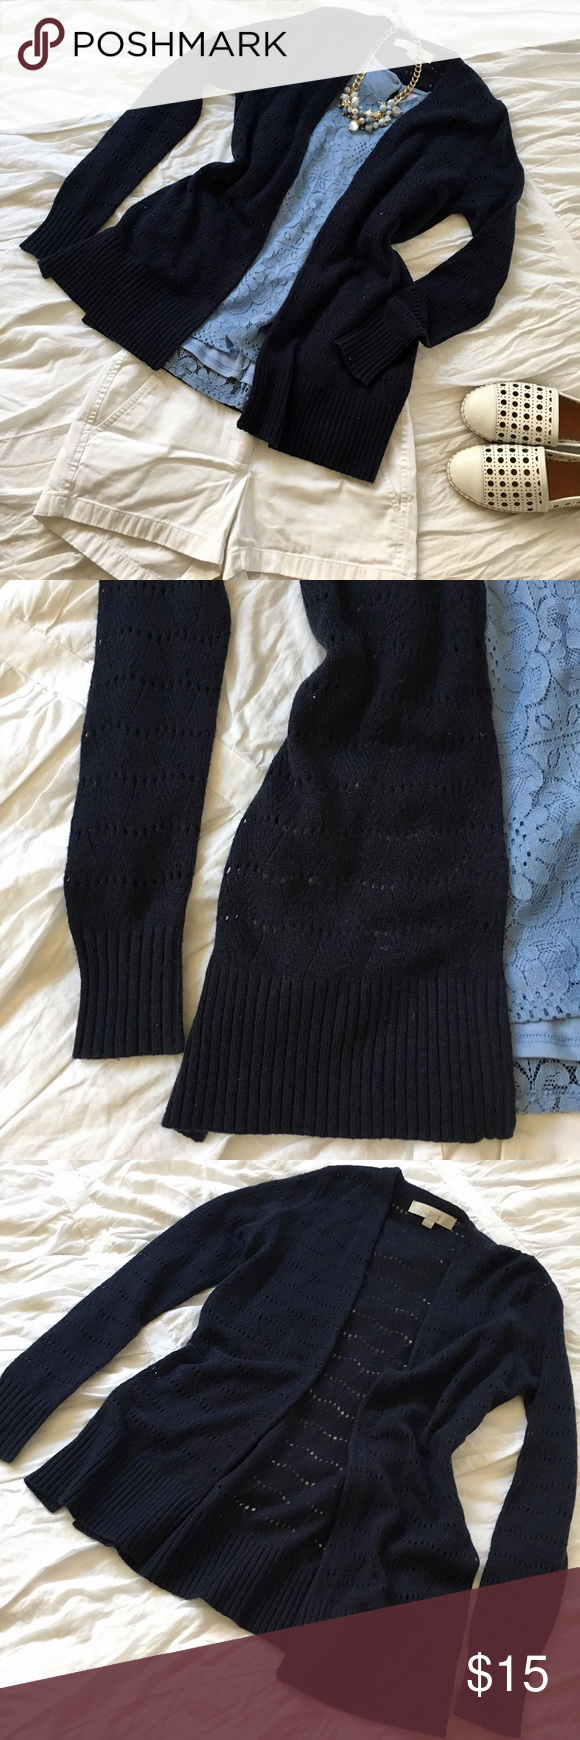 LOFT navy sweater LOFT navy sweater with perforated pattern. Super cute layering piece! Mix of rayon, wool, nylon, and cotton LOFT Sweaters Cardigans